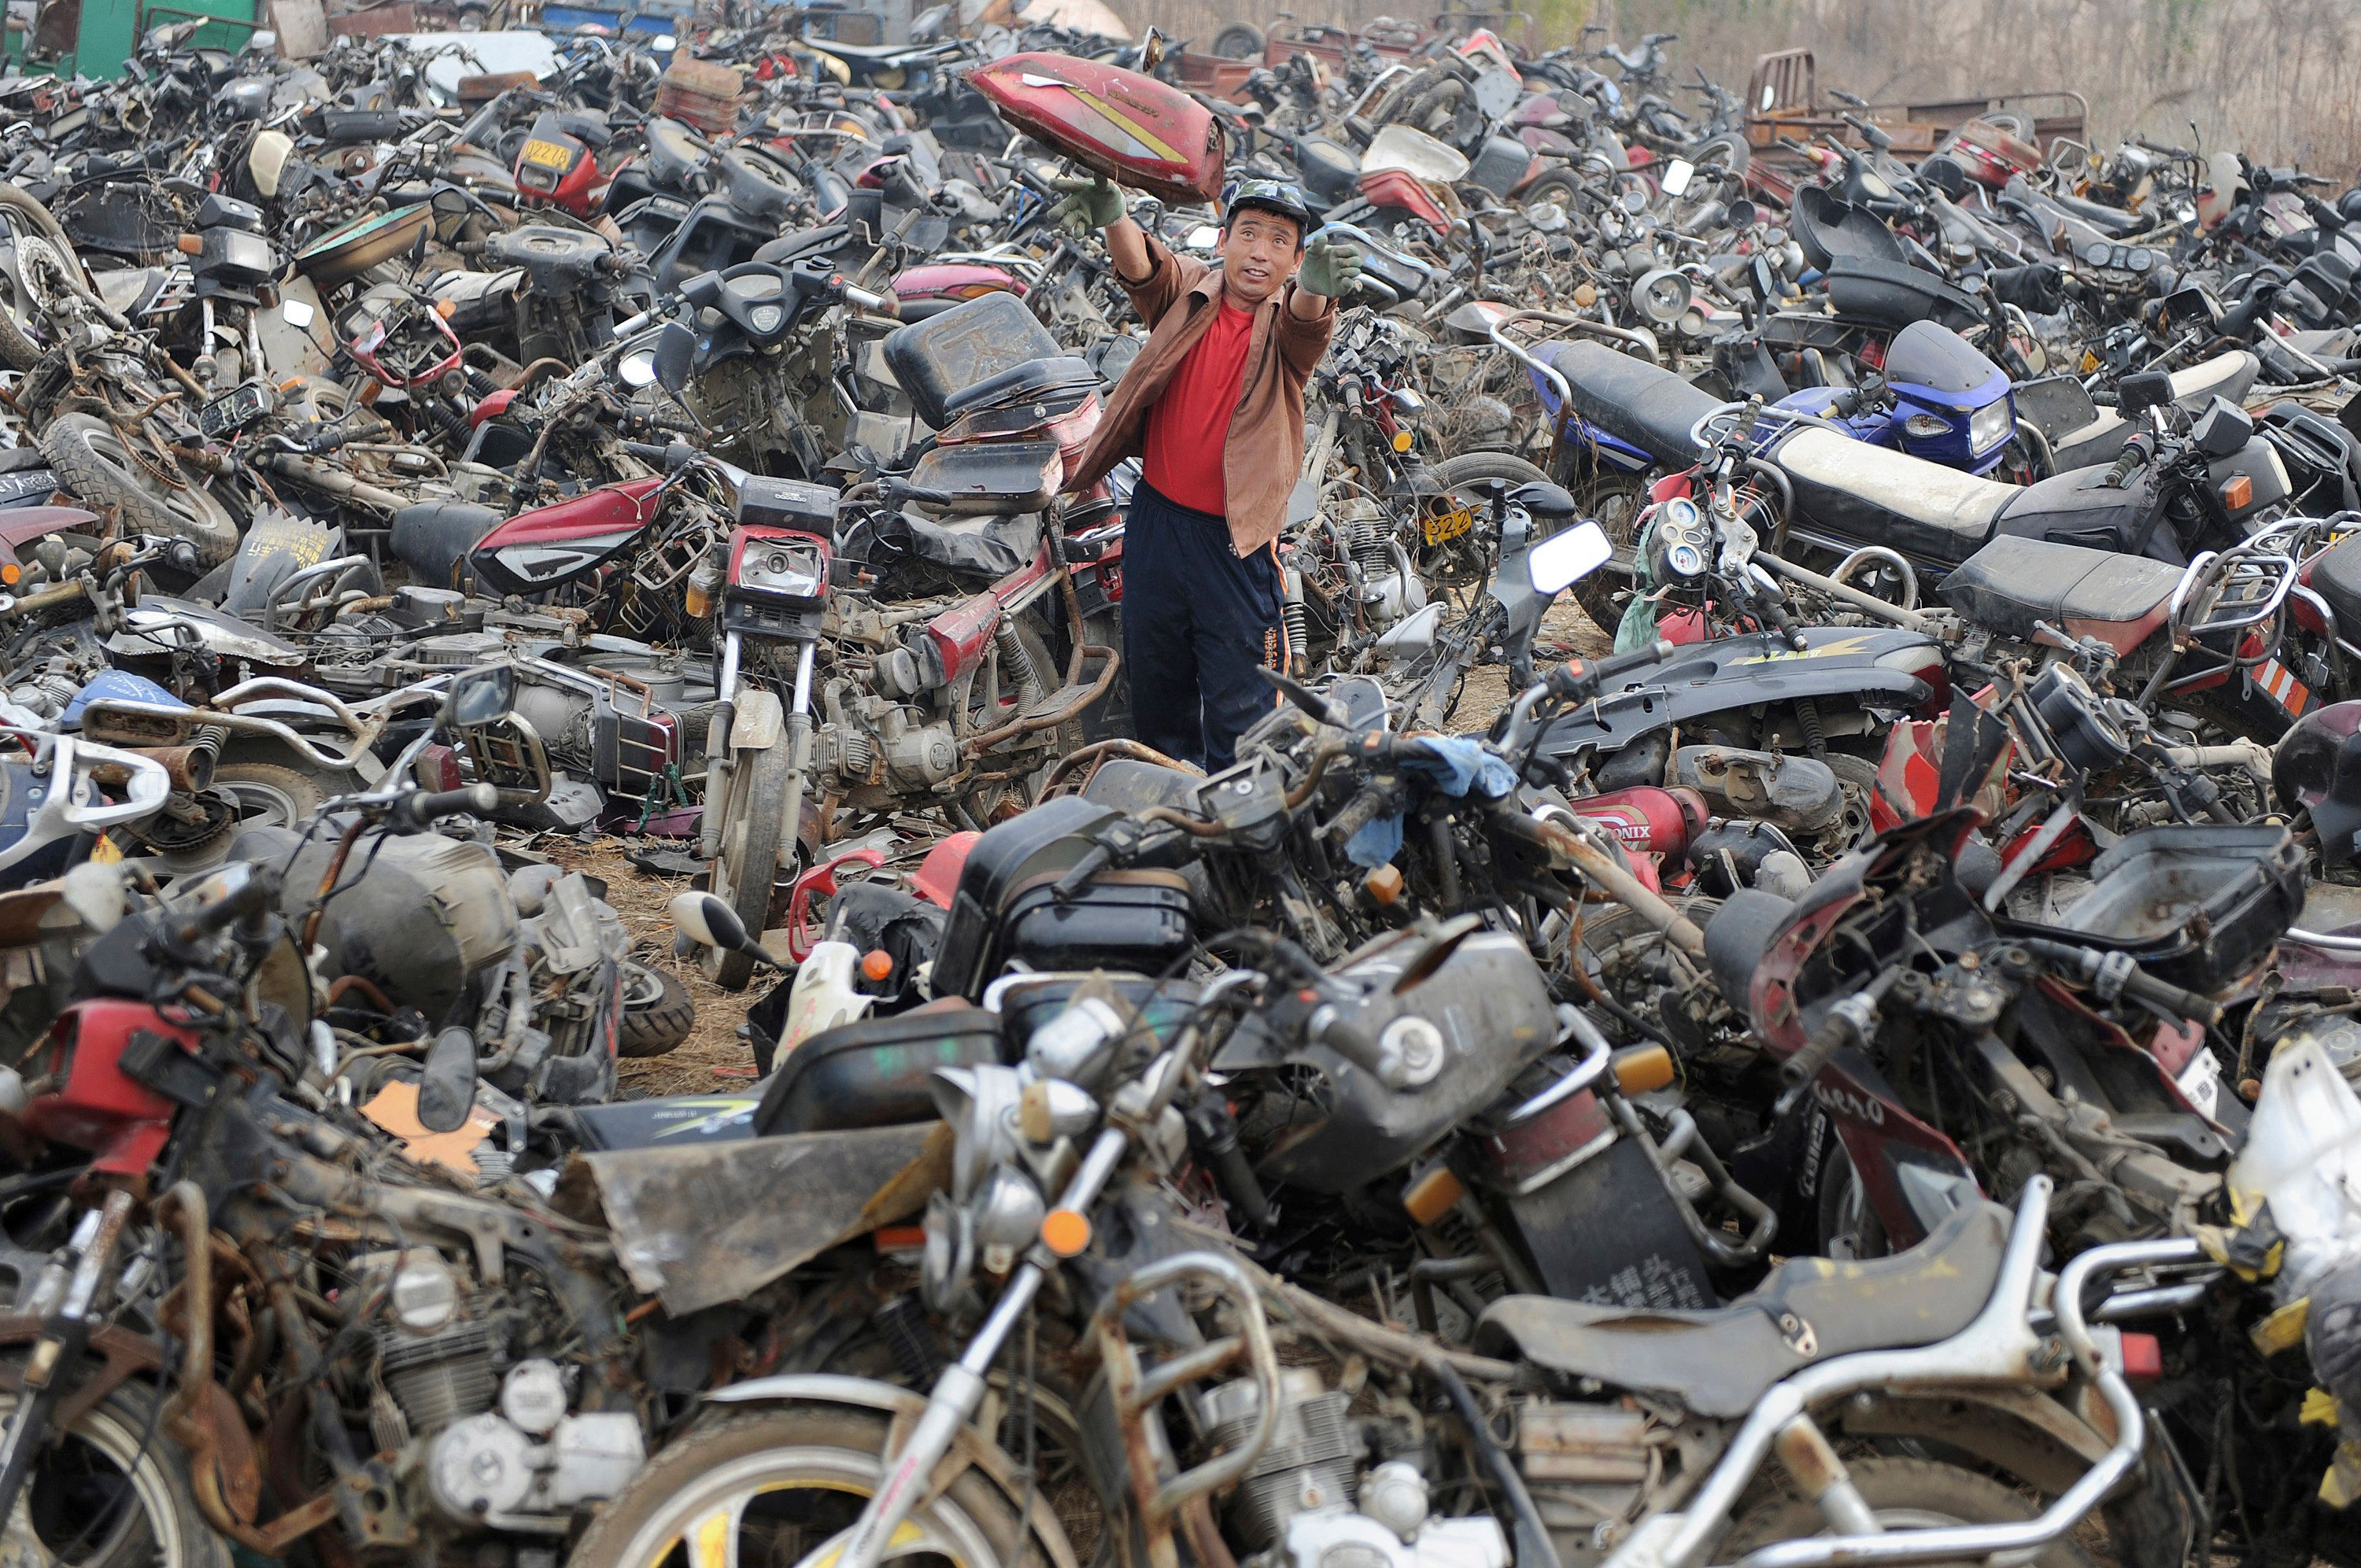 A laborer disassembles motorcycles at a recycling factory in Hefei, Anhui province, China in 2009.